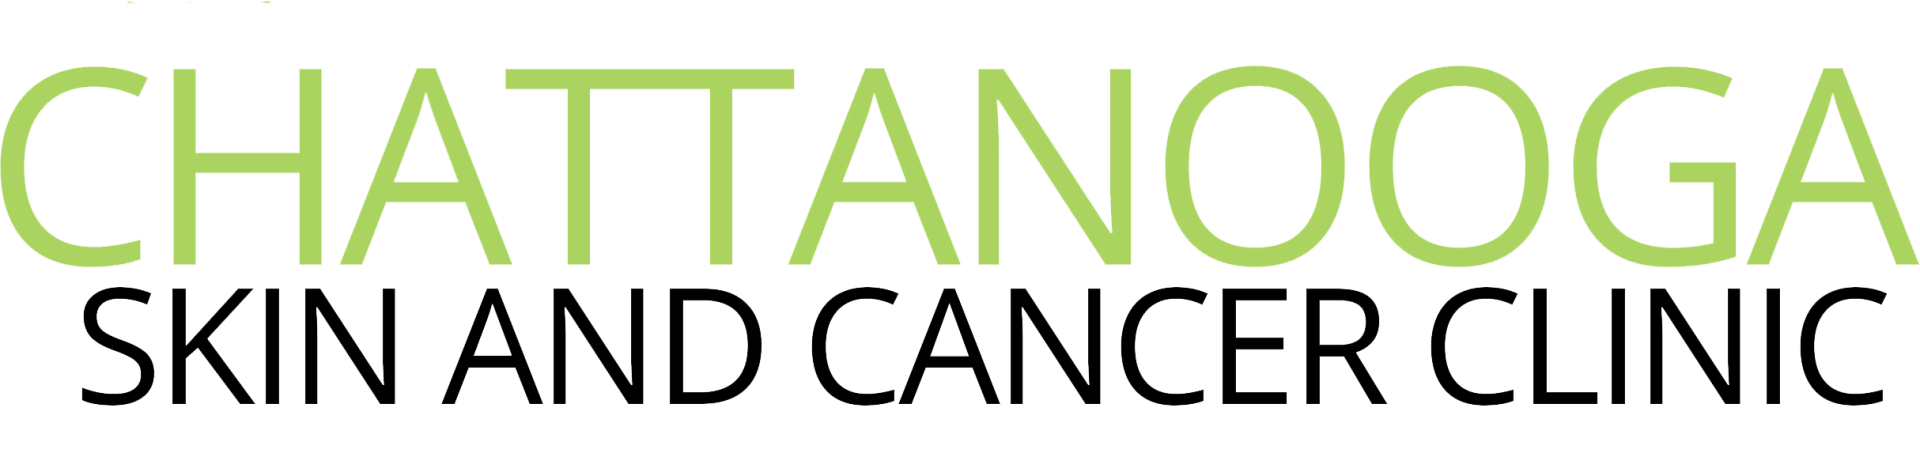 Chattanooga Skin And Cancer Clinic Dermatology In Chattanooga And Cleveland Tn